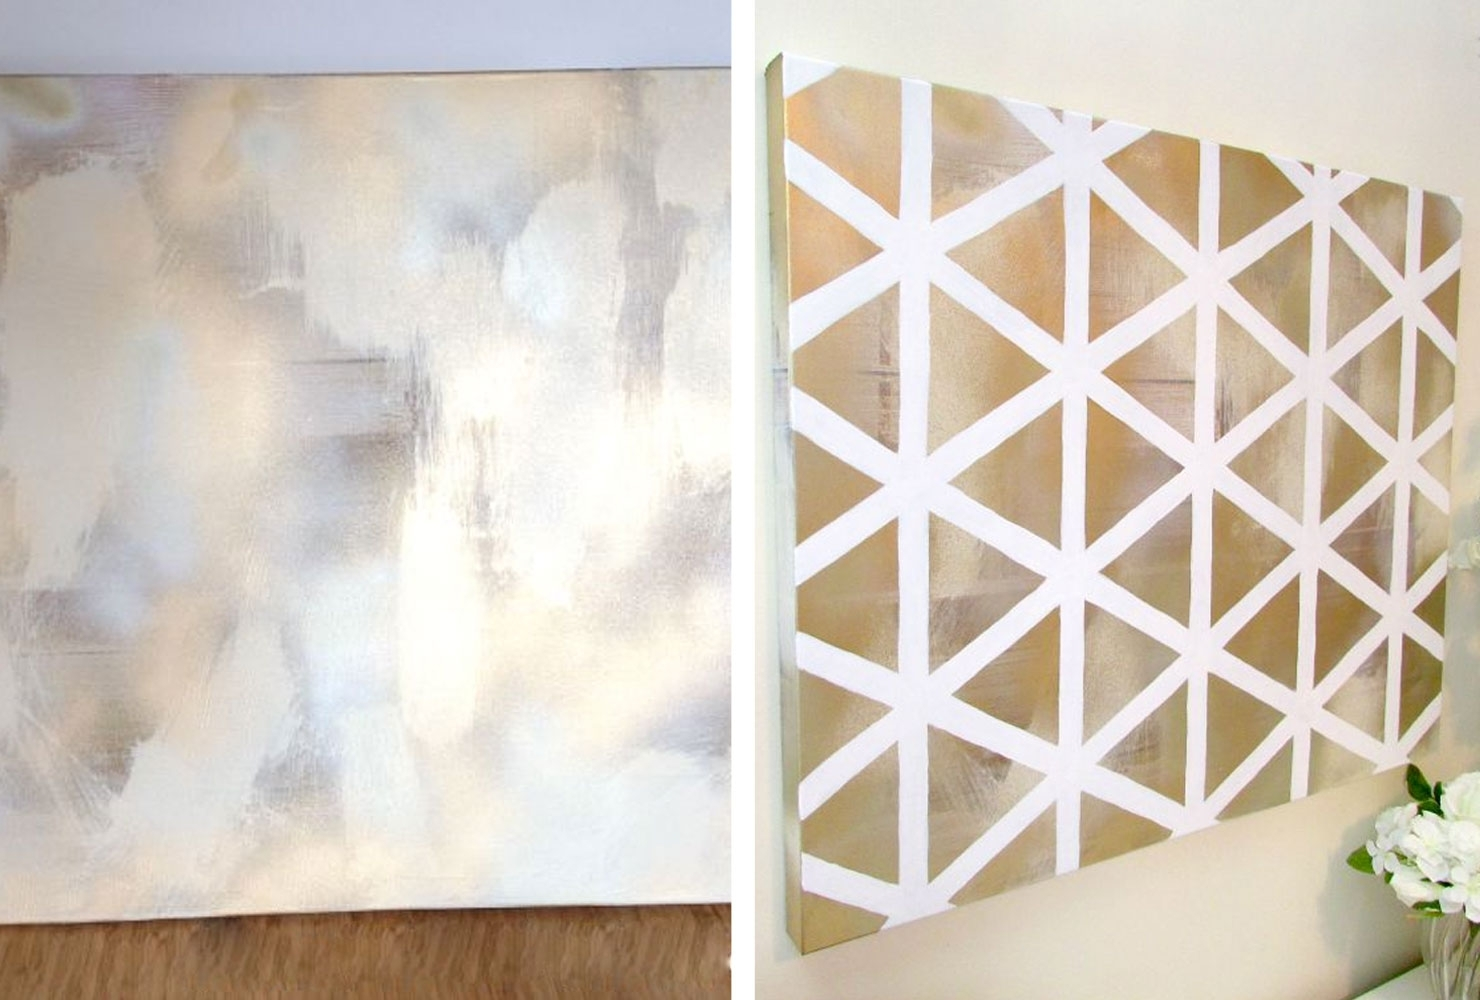 39 Beautiful Diy Canvas Painting Ideas For Your Home | Shutterfly Within Diy Canvas Wall Art (Photo 7 of 20)